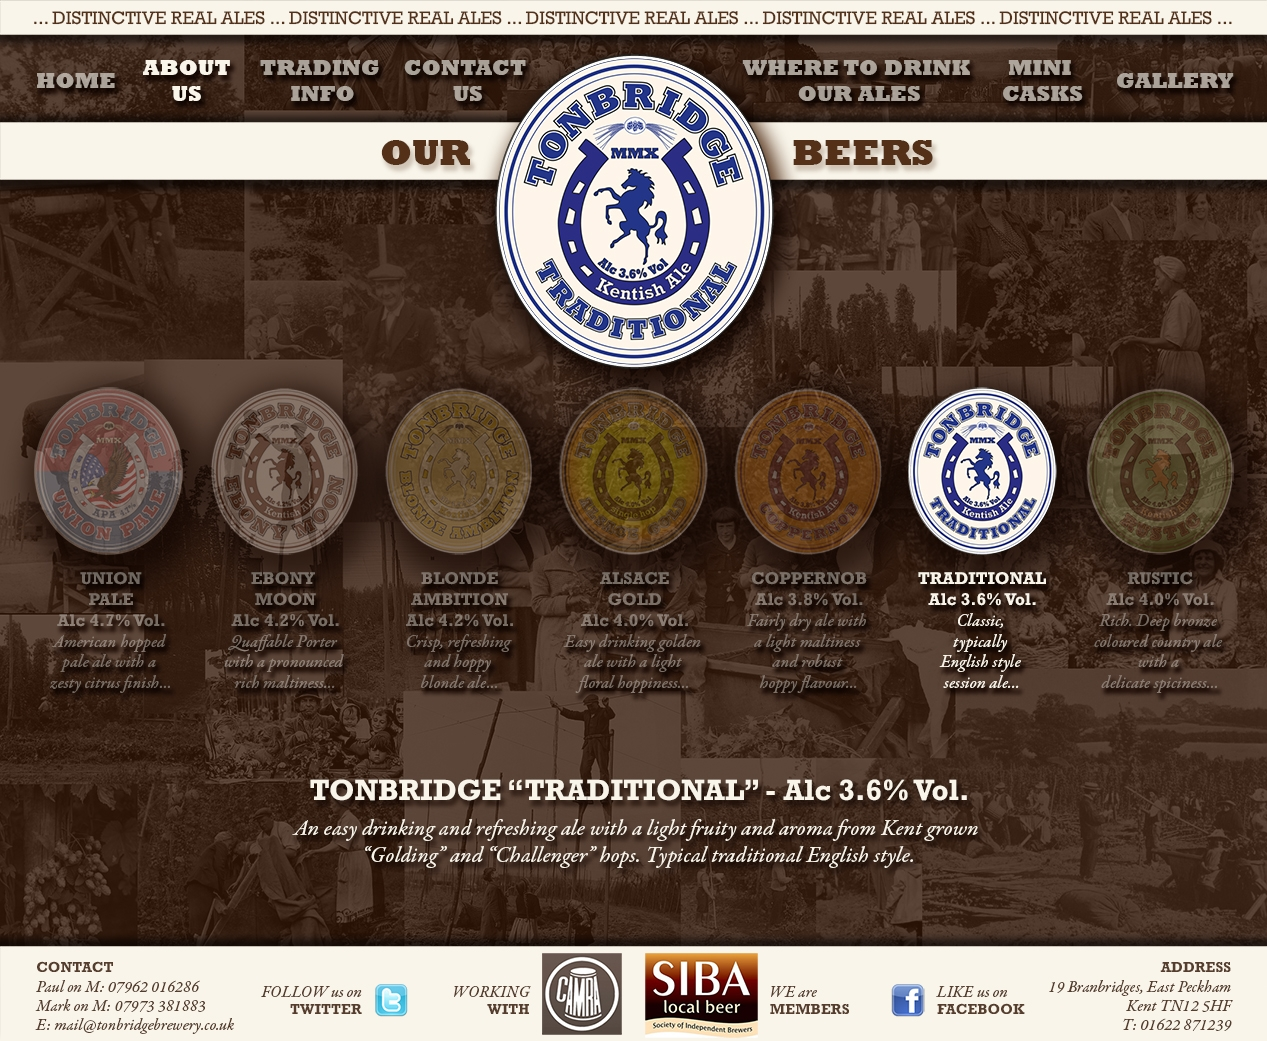 tonbridgebrewery about us 02F TRADITIONAL.jpg